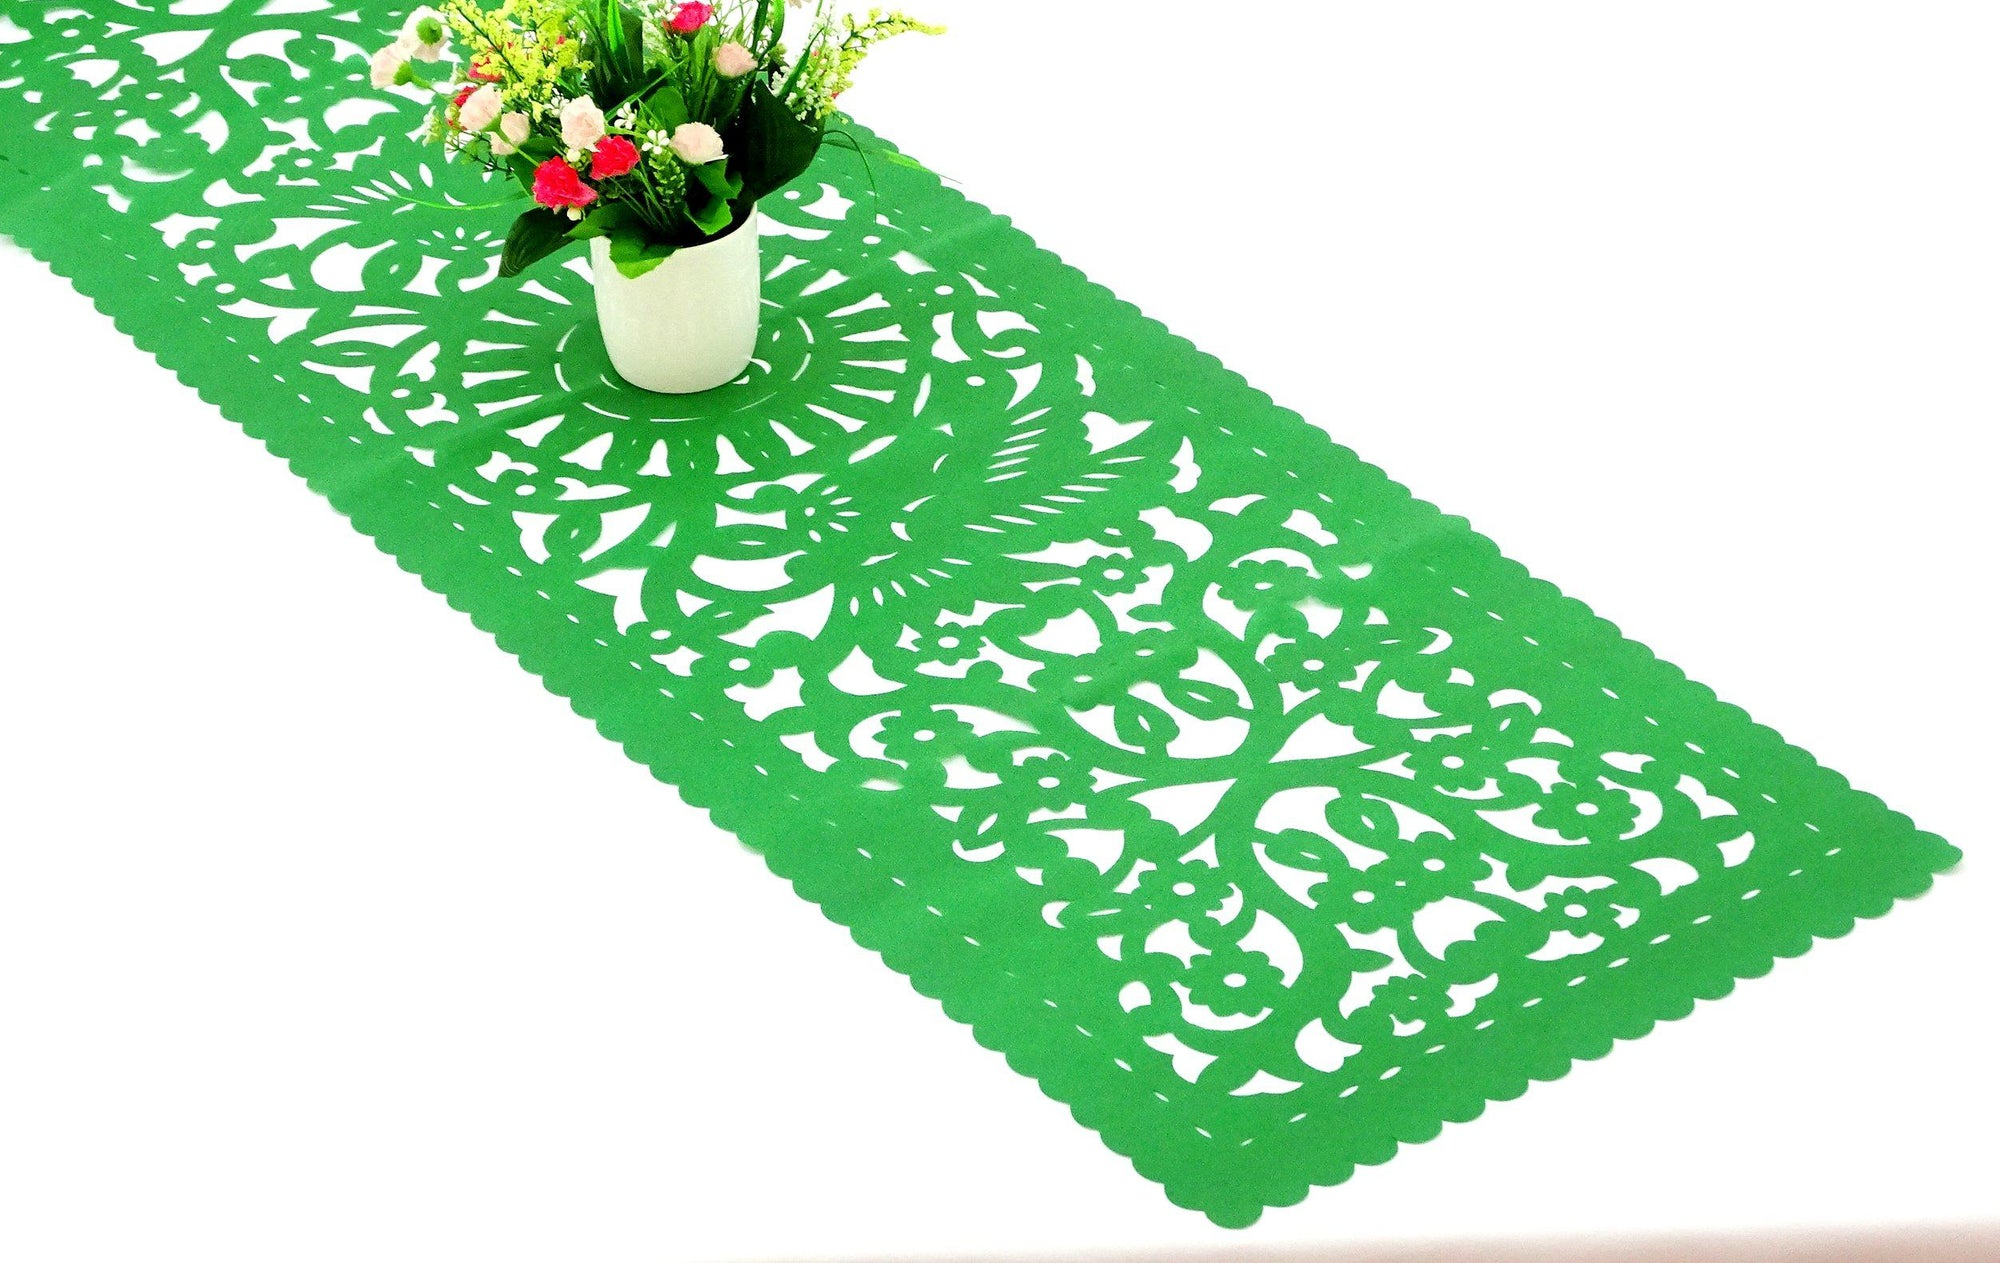 Cinco de Mayo, Papel picado table runner, Green synthetic fabric, table topper, Mexican fiesta party decorations, FTR3